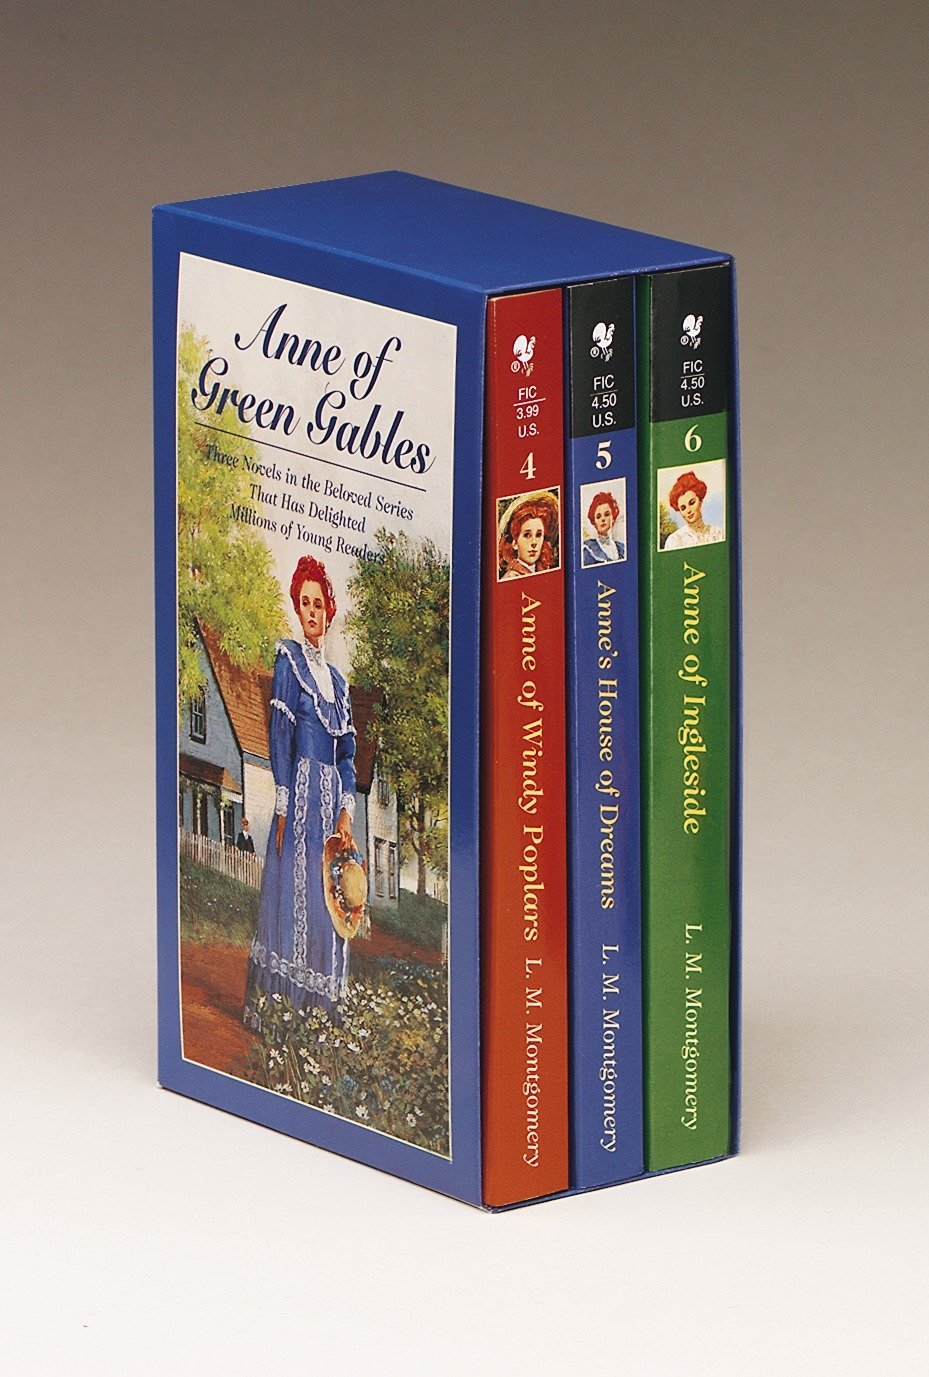 anne-of-green-gables-3-book-box-set-volume-ii-anne-of-ingleside-anne-s-house-of-dreams-anne-of-windy-poplars